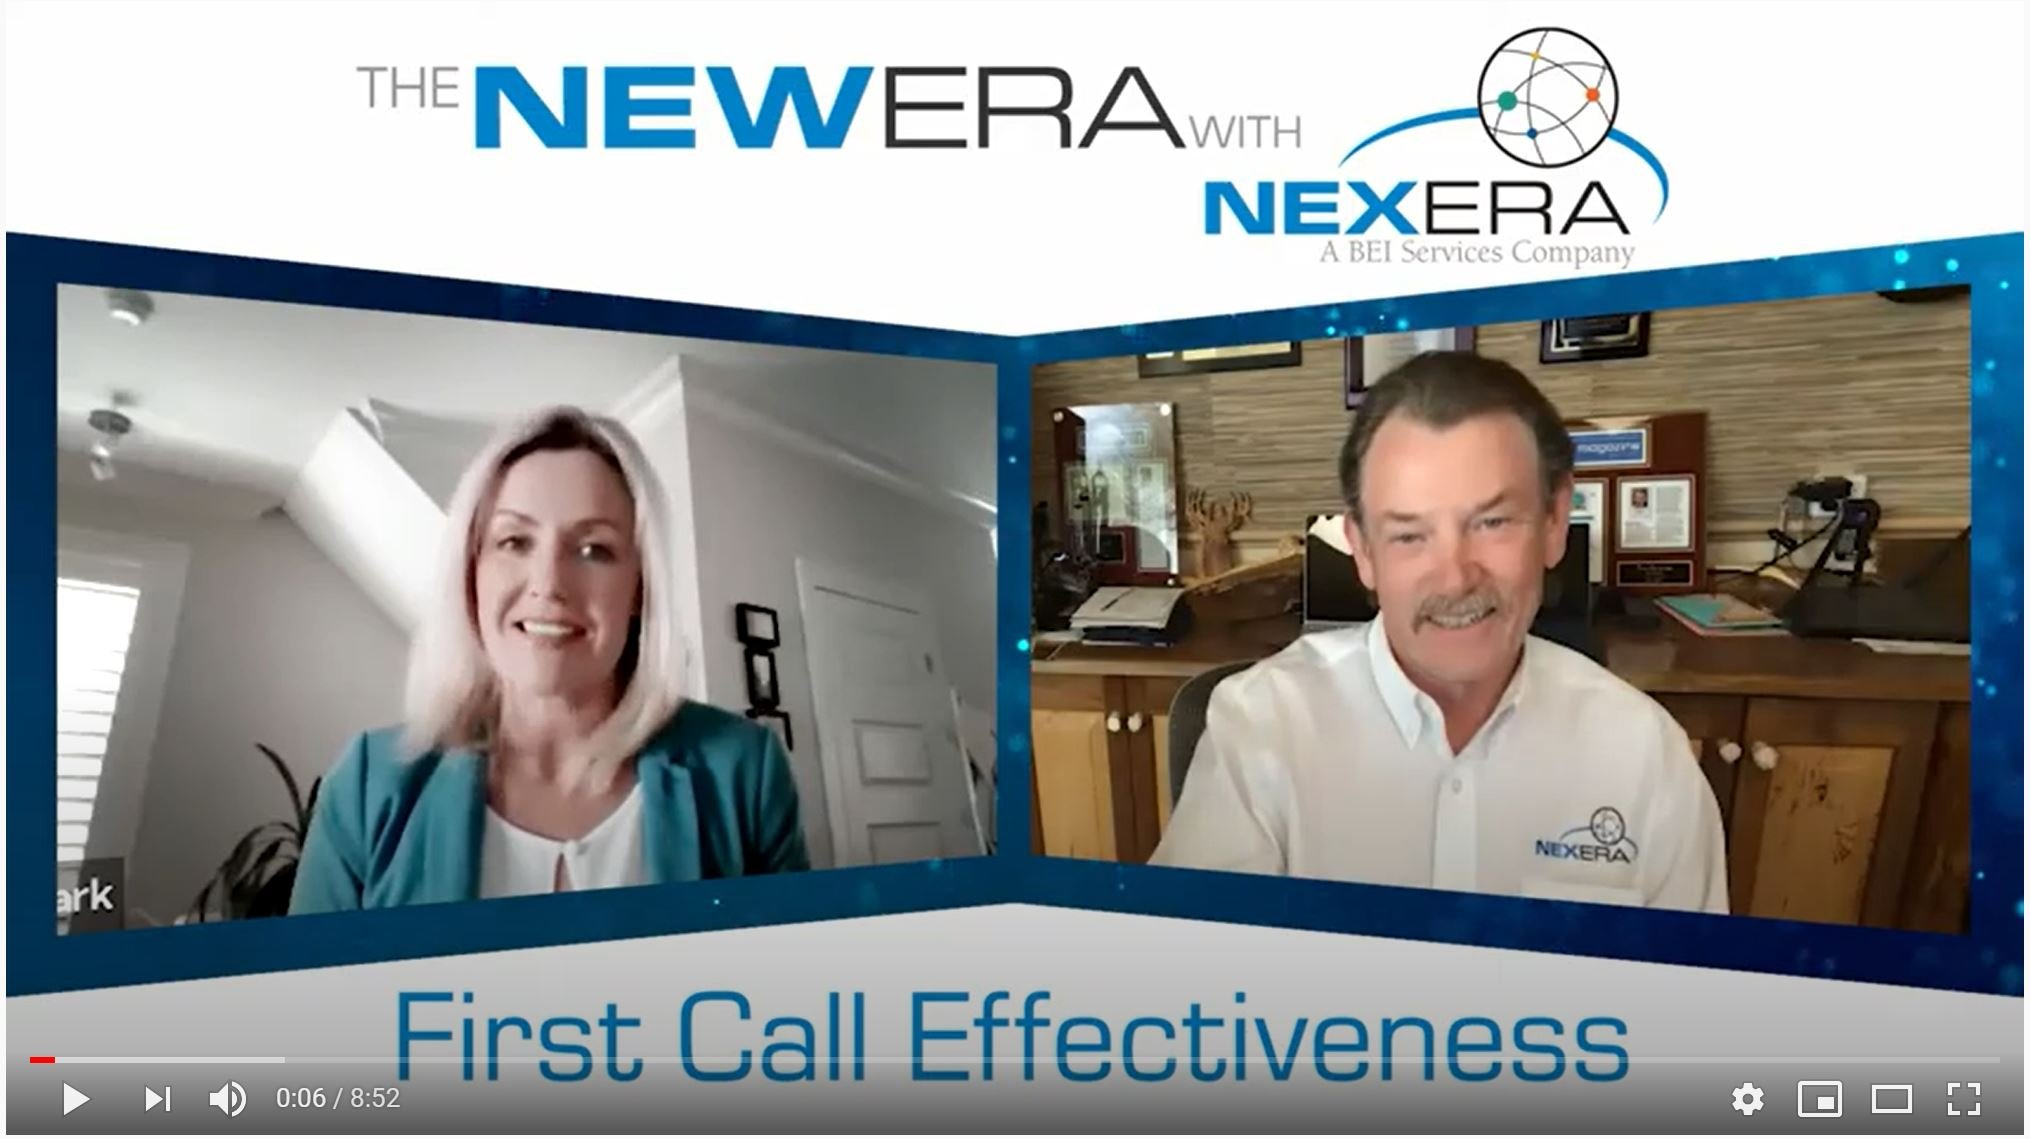 What is your real first call effectiveness?